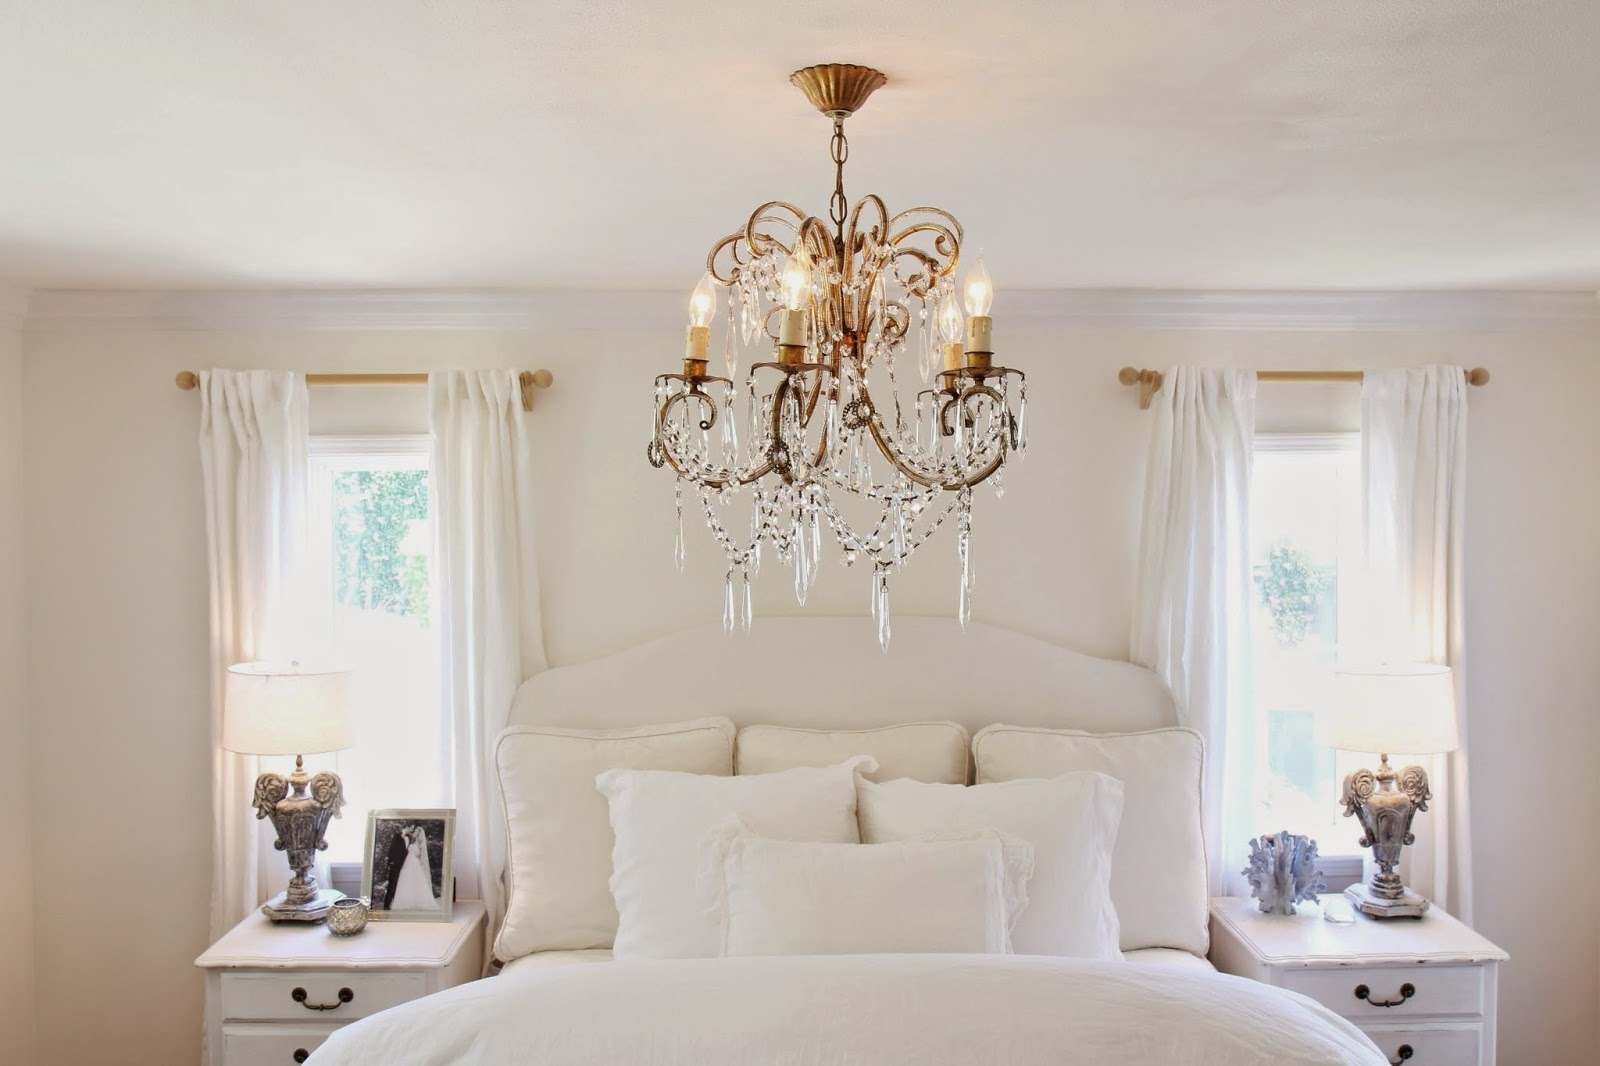 Chandeliers In The Bedroom For Most Recently Released Nora's Nest: A Chandelier For The Master Bedroom (View 9 of 20)